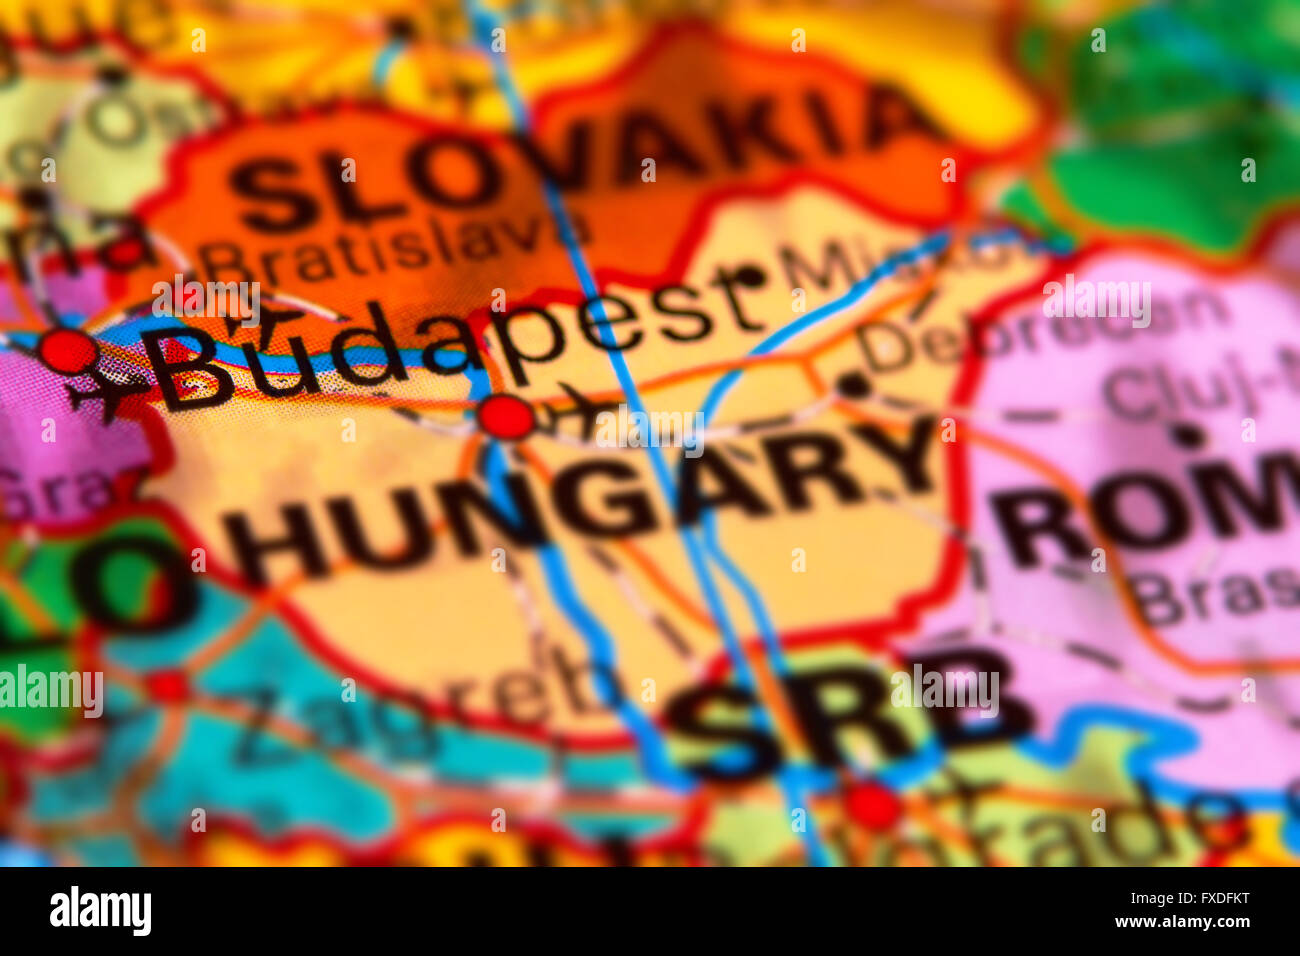 Budapest capital city of hungary on the world map stock photo budapest capital city of hungary on the world map gumiabroncs Images